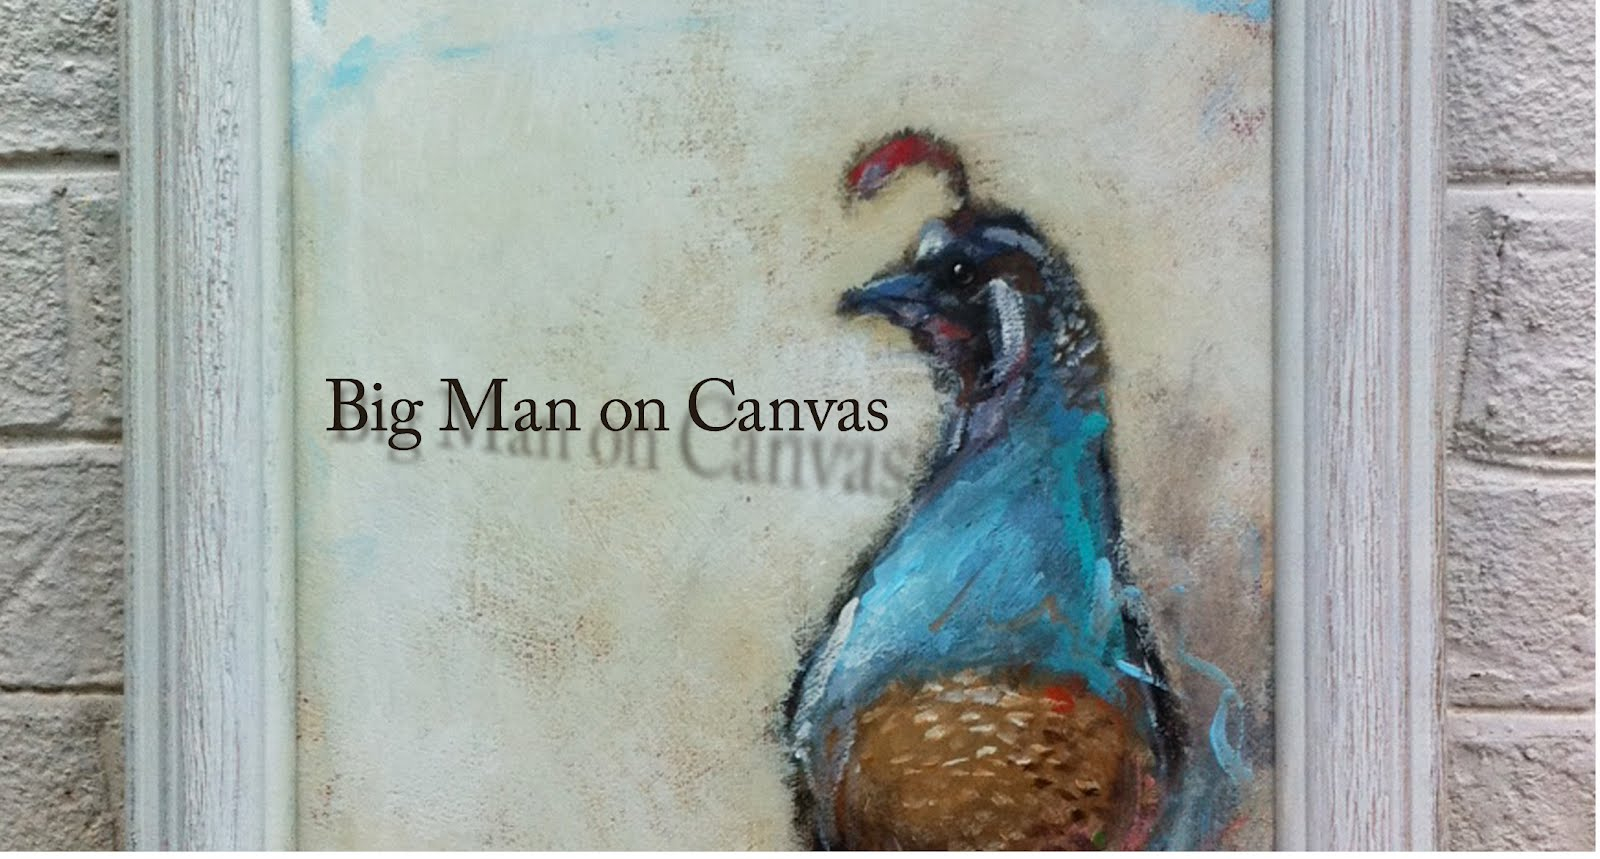 Big Man on Canvas